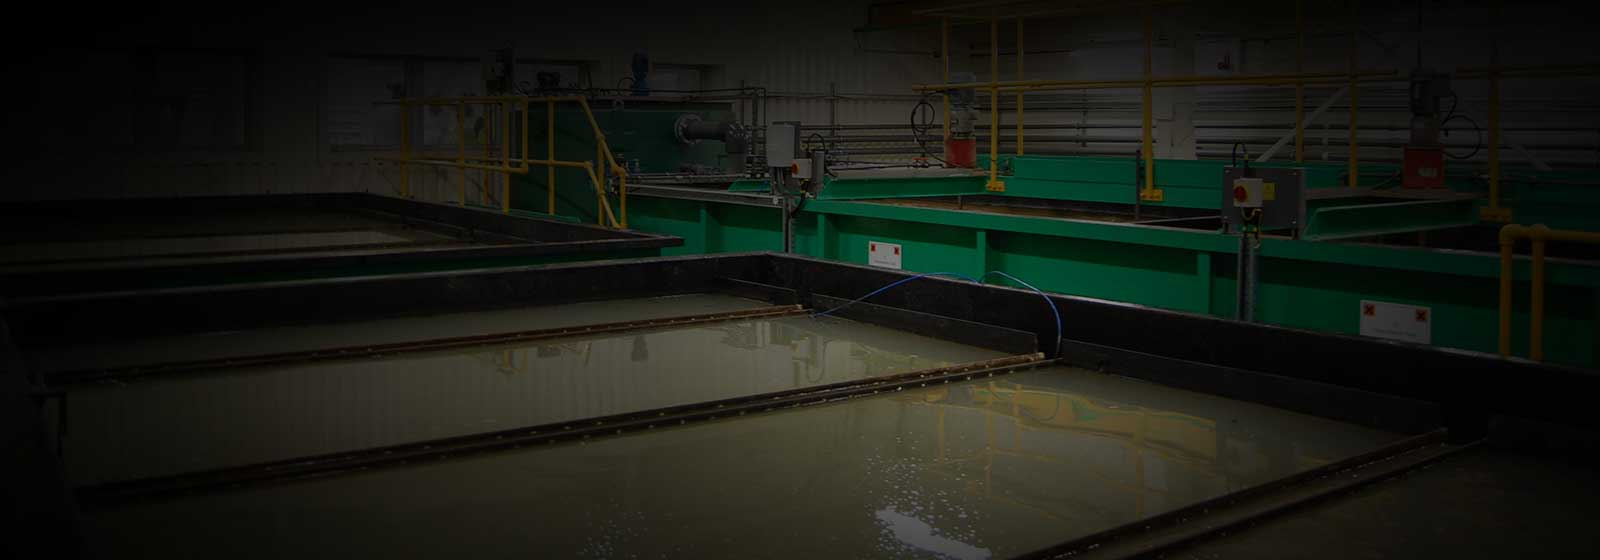 Clarifiers & chemical treatment tanks